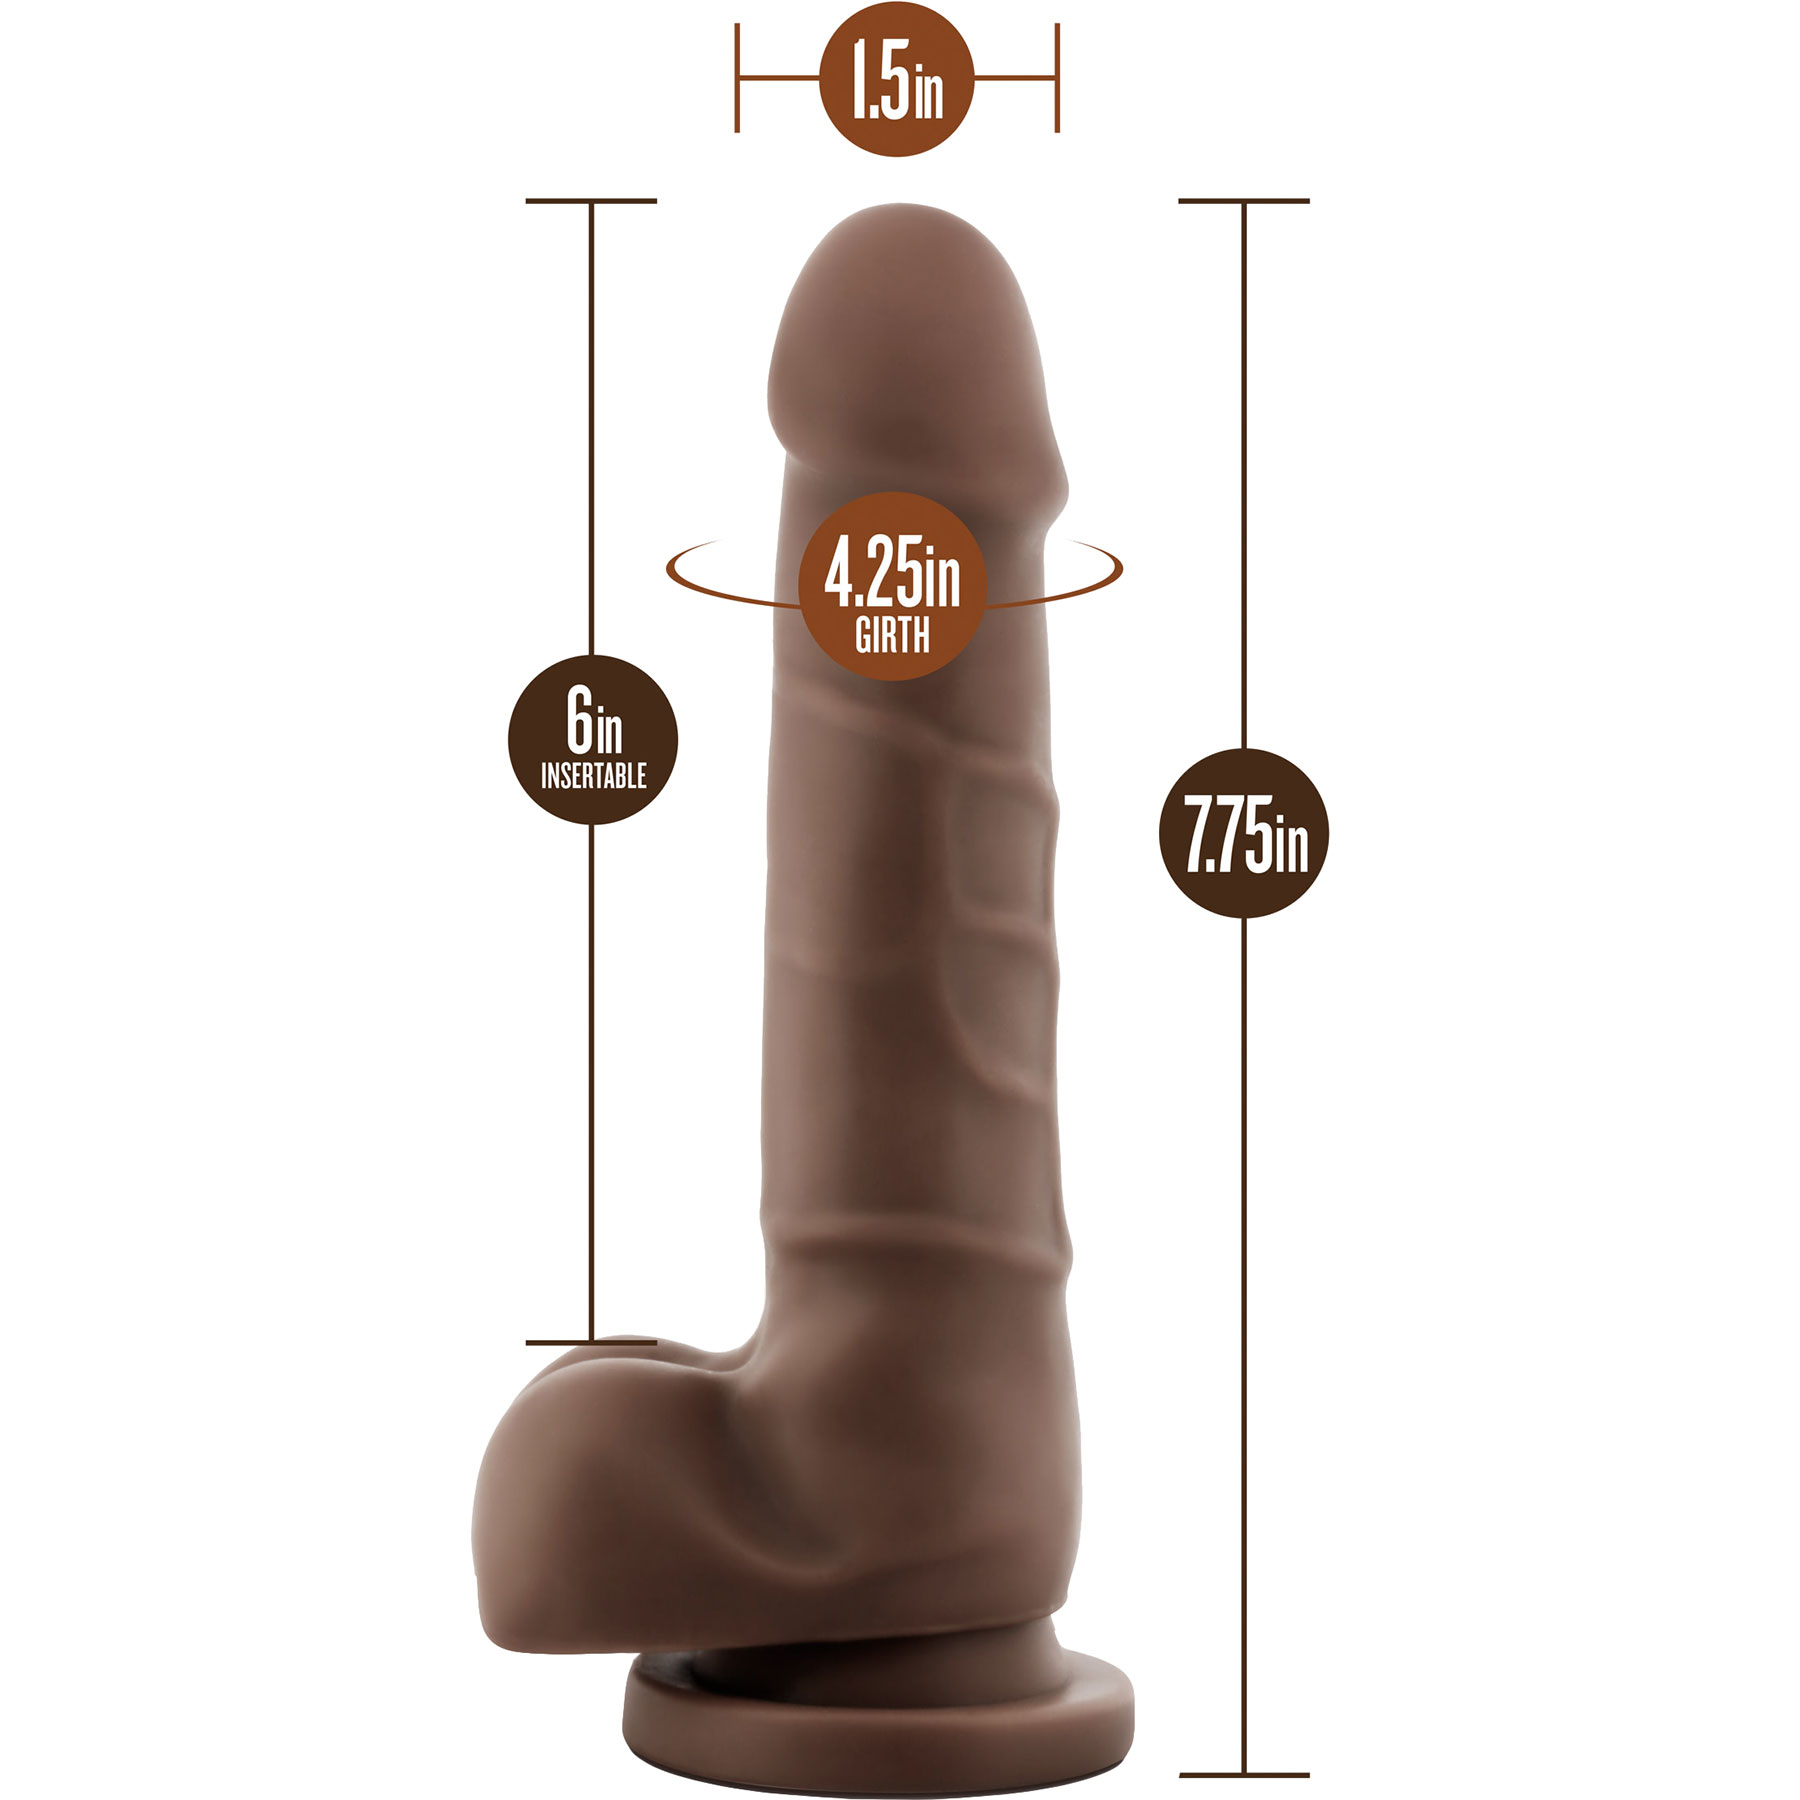 Dr. Skin Basic 7 Inch Realistic Dildo With Balls & Suction Cup by Blush - Measurements